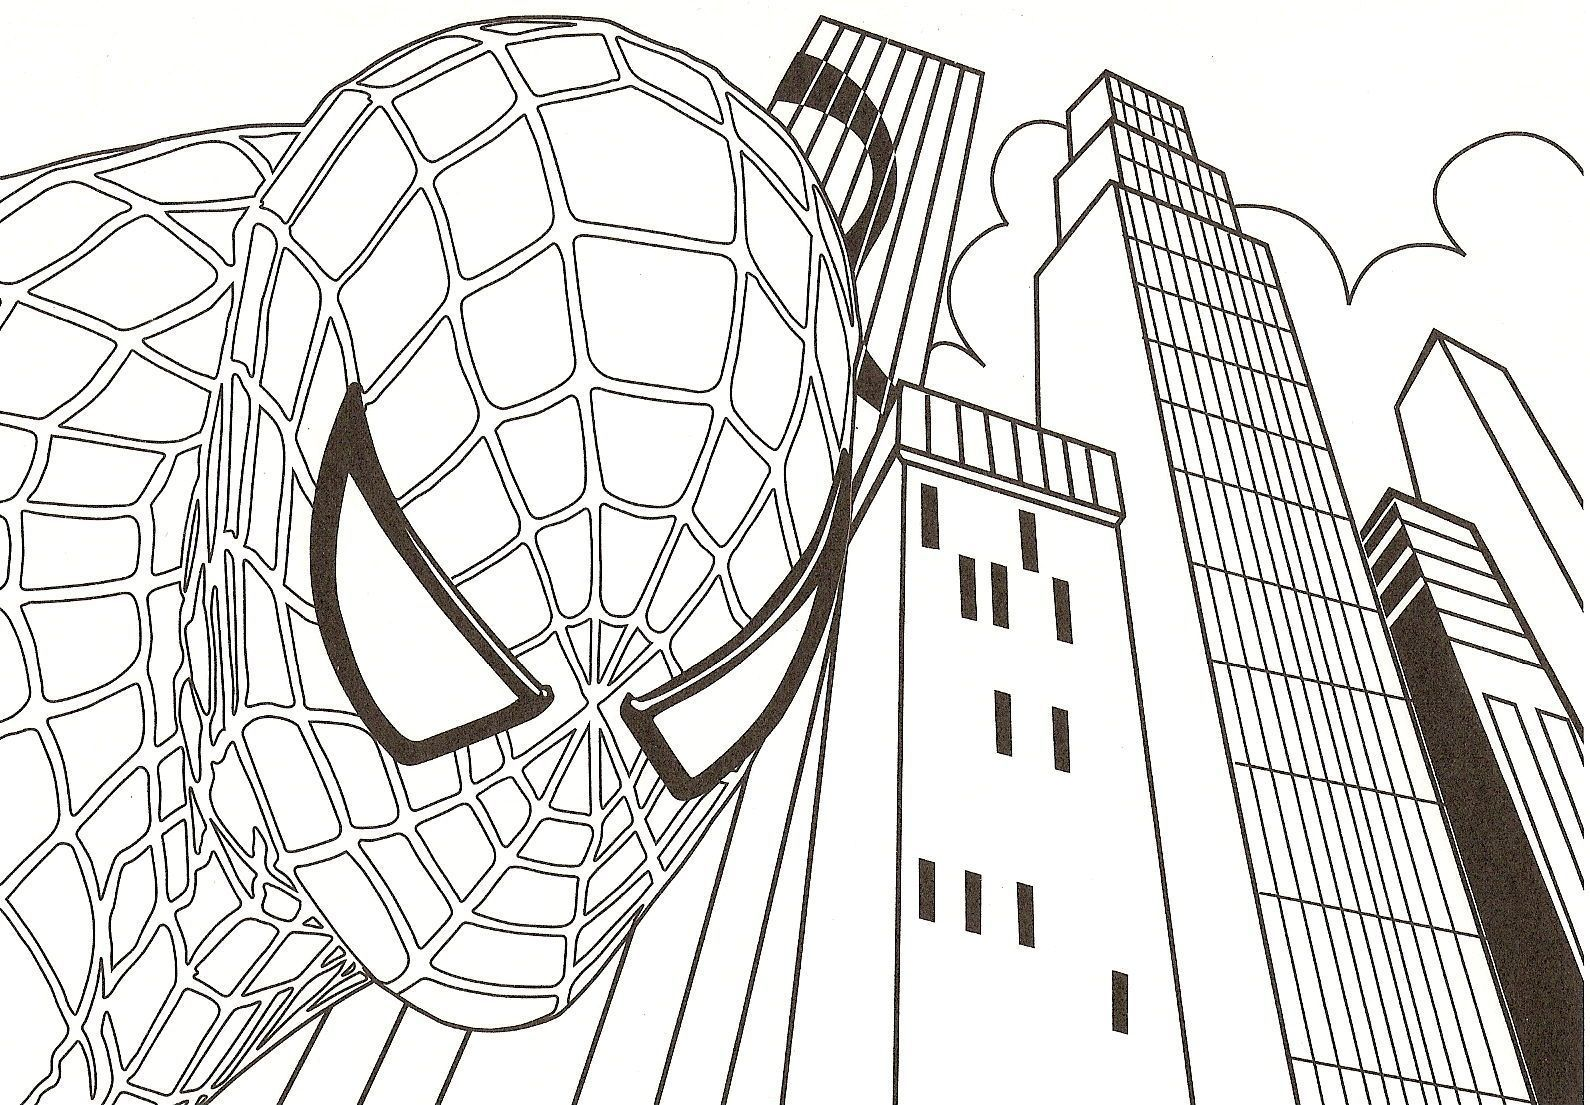 Coloriage spiderman centerblog - Dessin spiderman facile ...